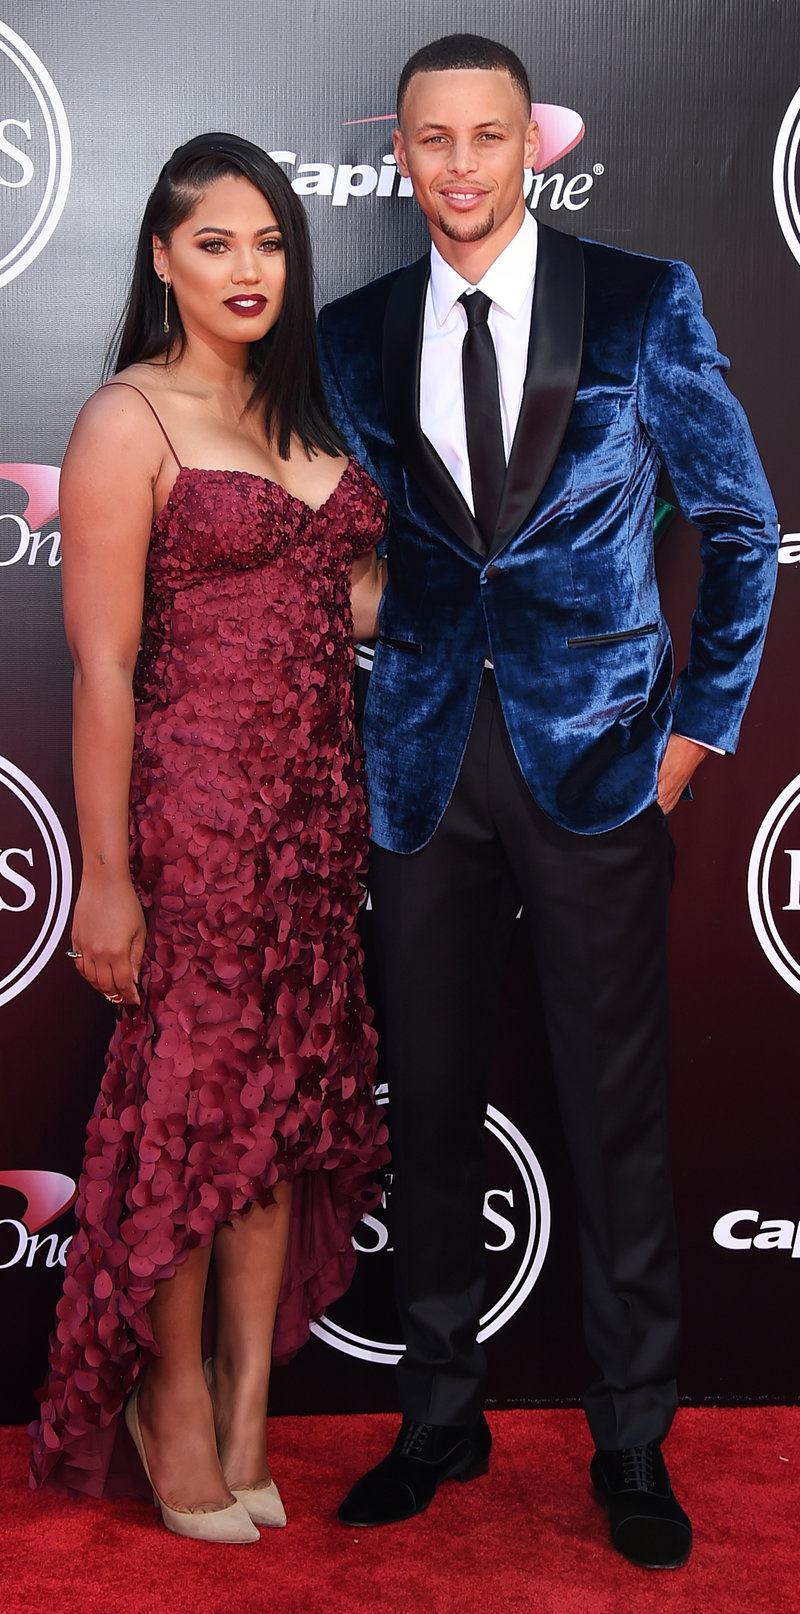 NBA basketball player Stephen Curry, of the Golden State Warriors, right, and Ayesha Curry arrive at the ESPY Awards at the Microsoft Theater on Wednesday, July 13, 2016, in Los Angeles. (Photo by Jordan Strauss/Invision/AP)